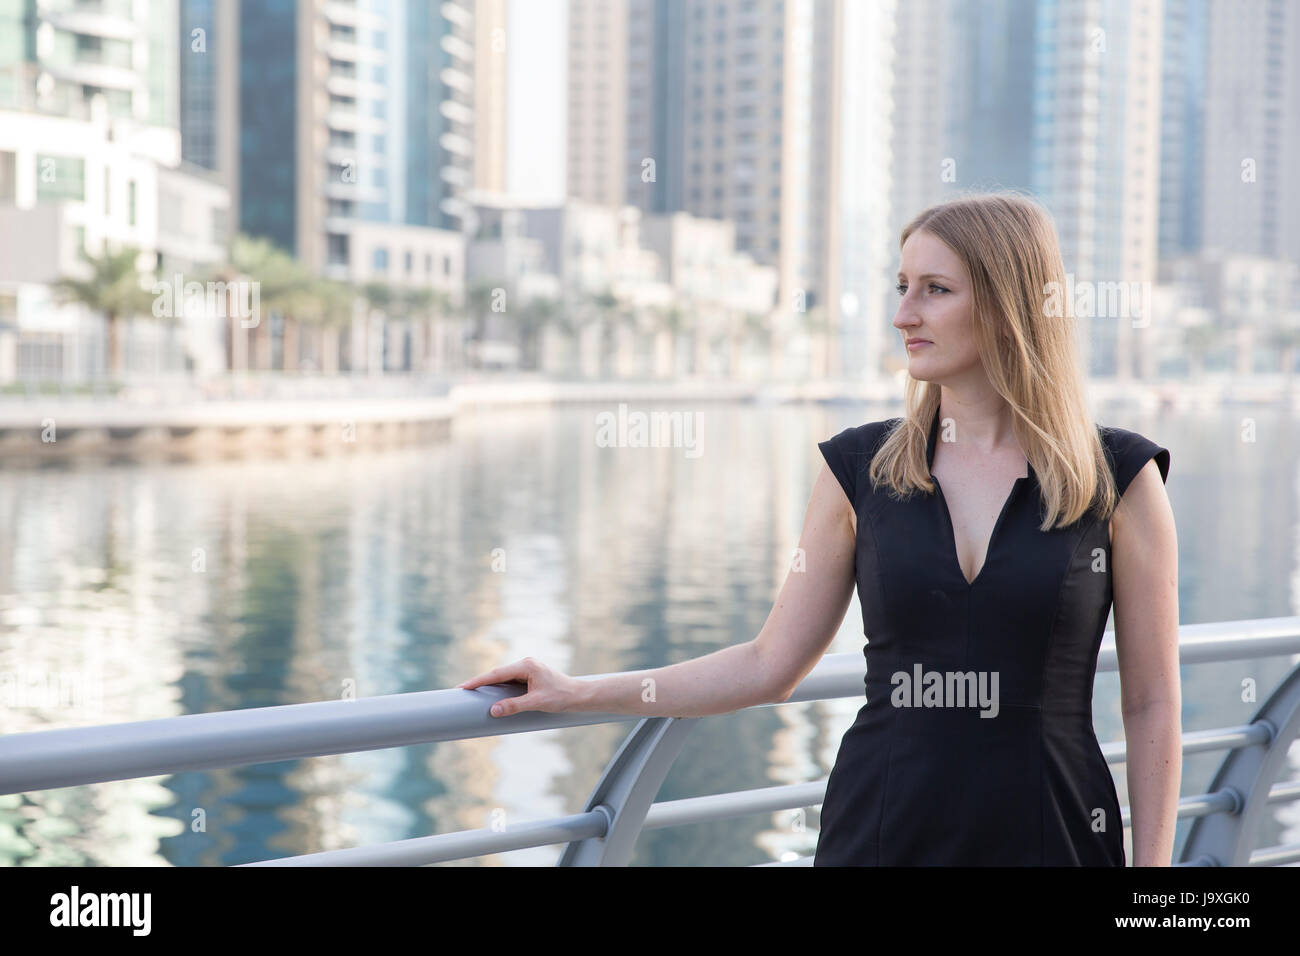 Businesswoman in a formalwear in Dubai Marina - Stock Image